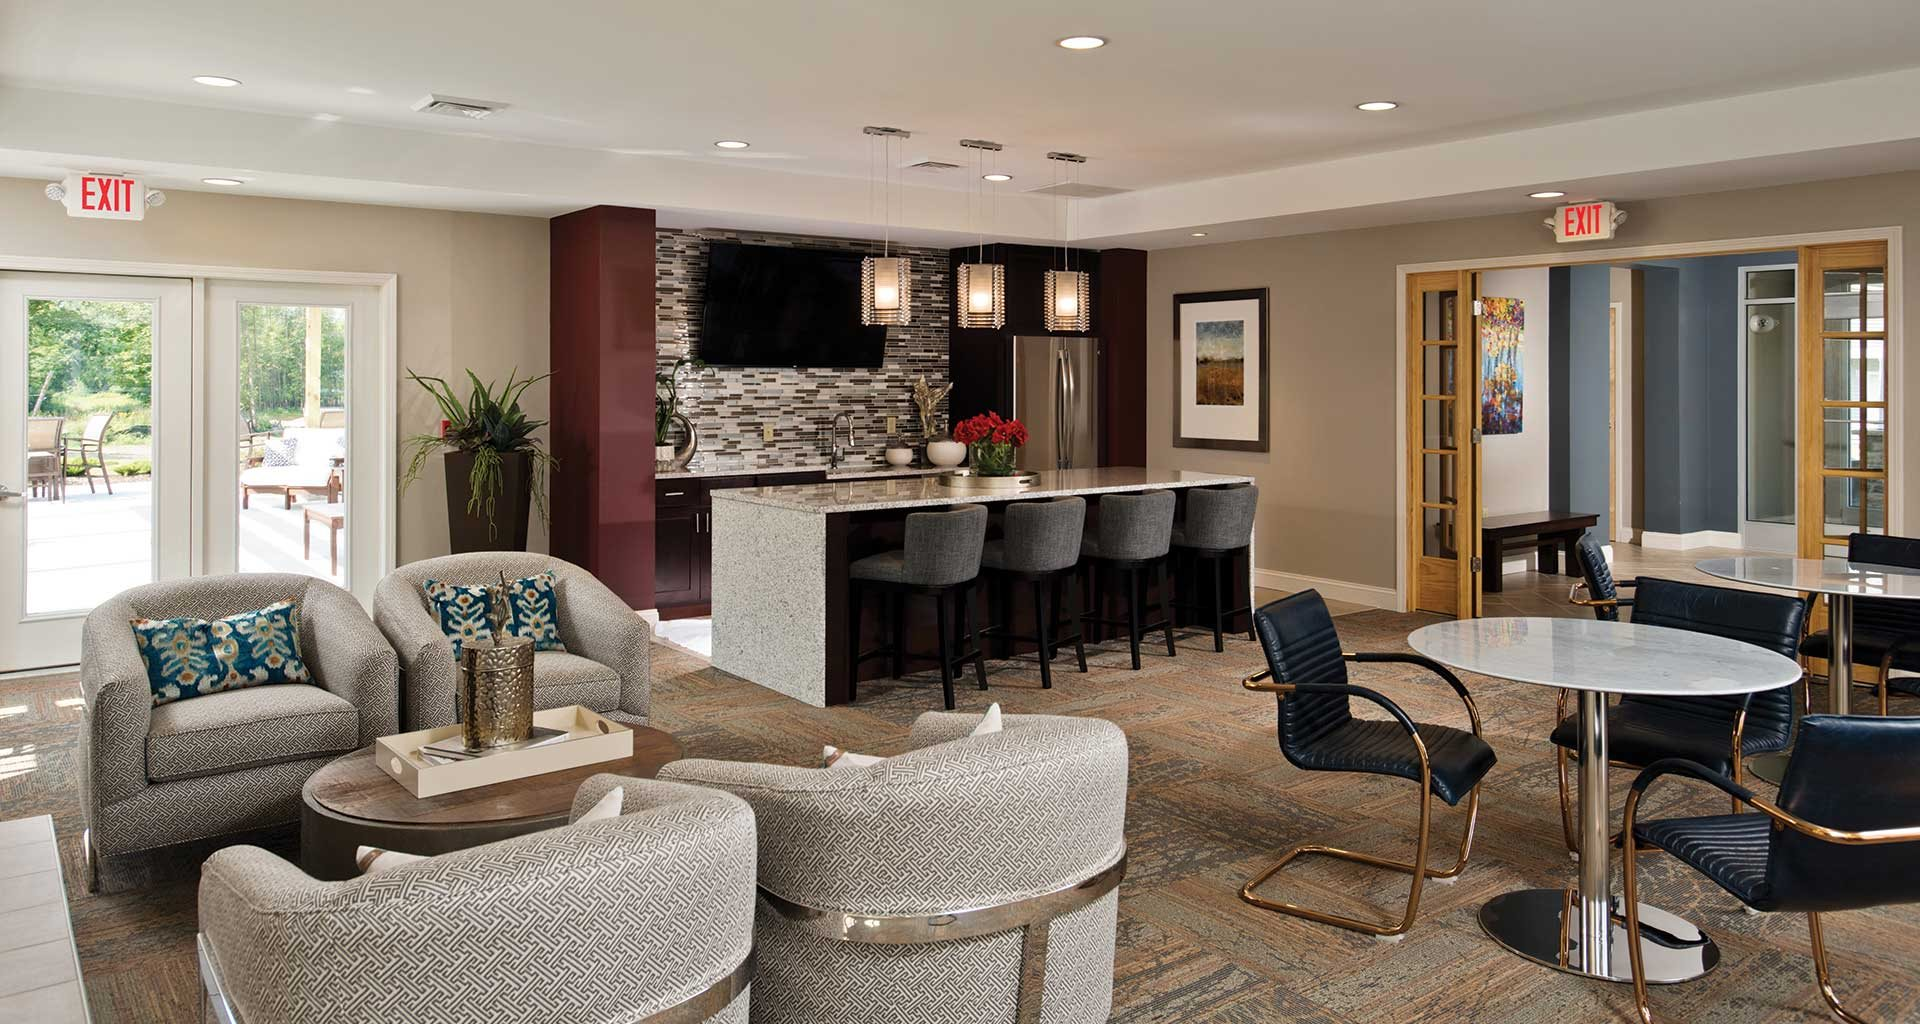 Club room with kitchen at Deerfield Place, Utica, NY